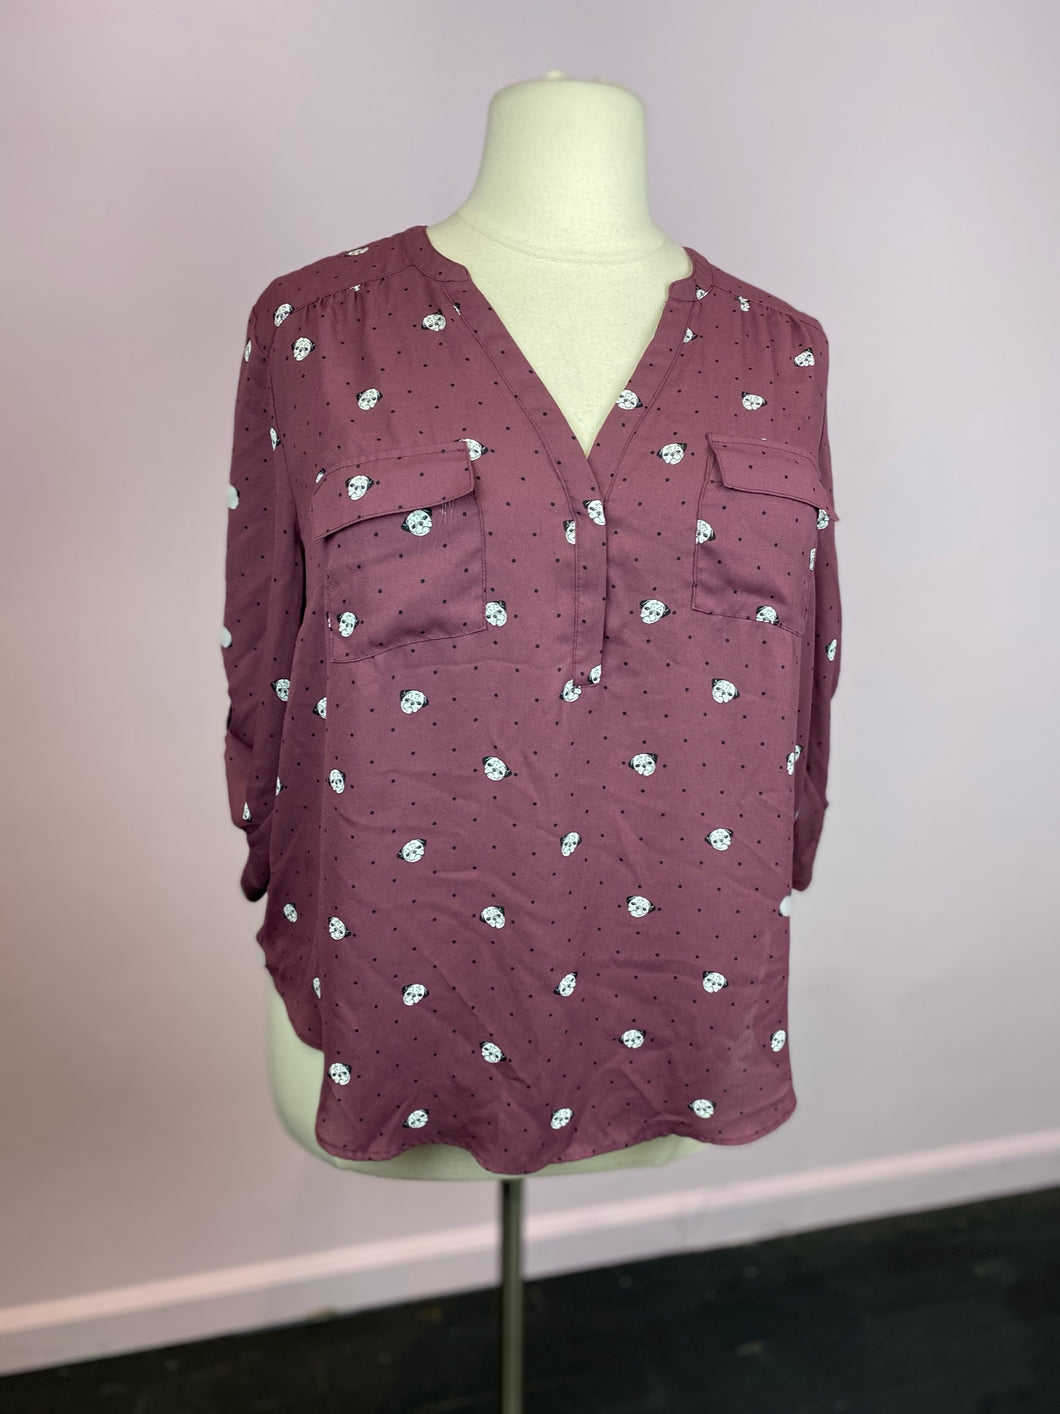 Plum Half-Button Up with Pug Heads and Polka Dots by Torrid, Size 1